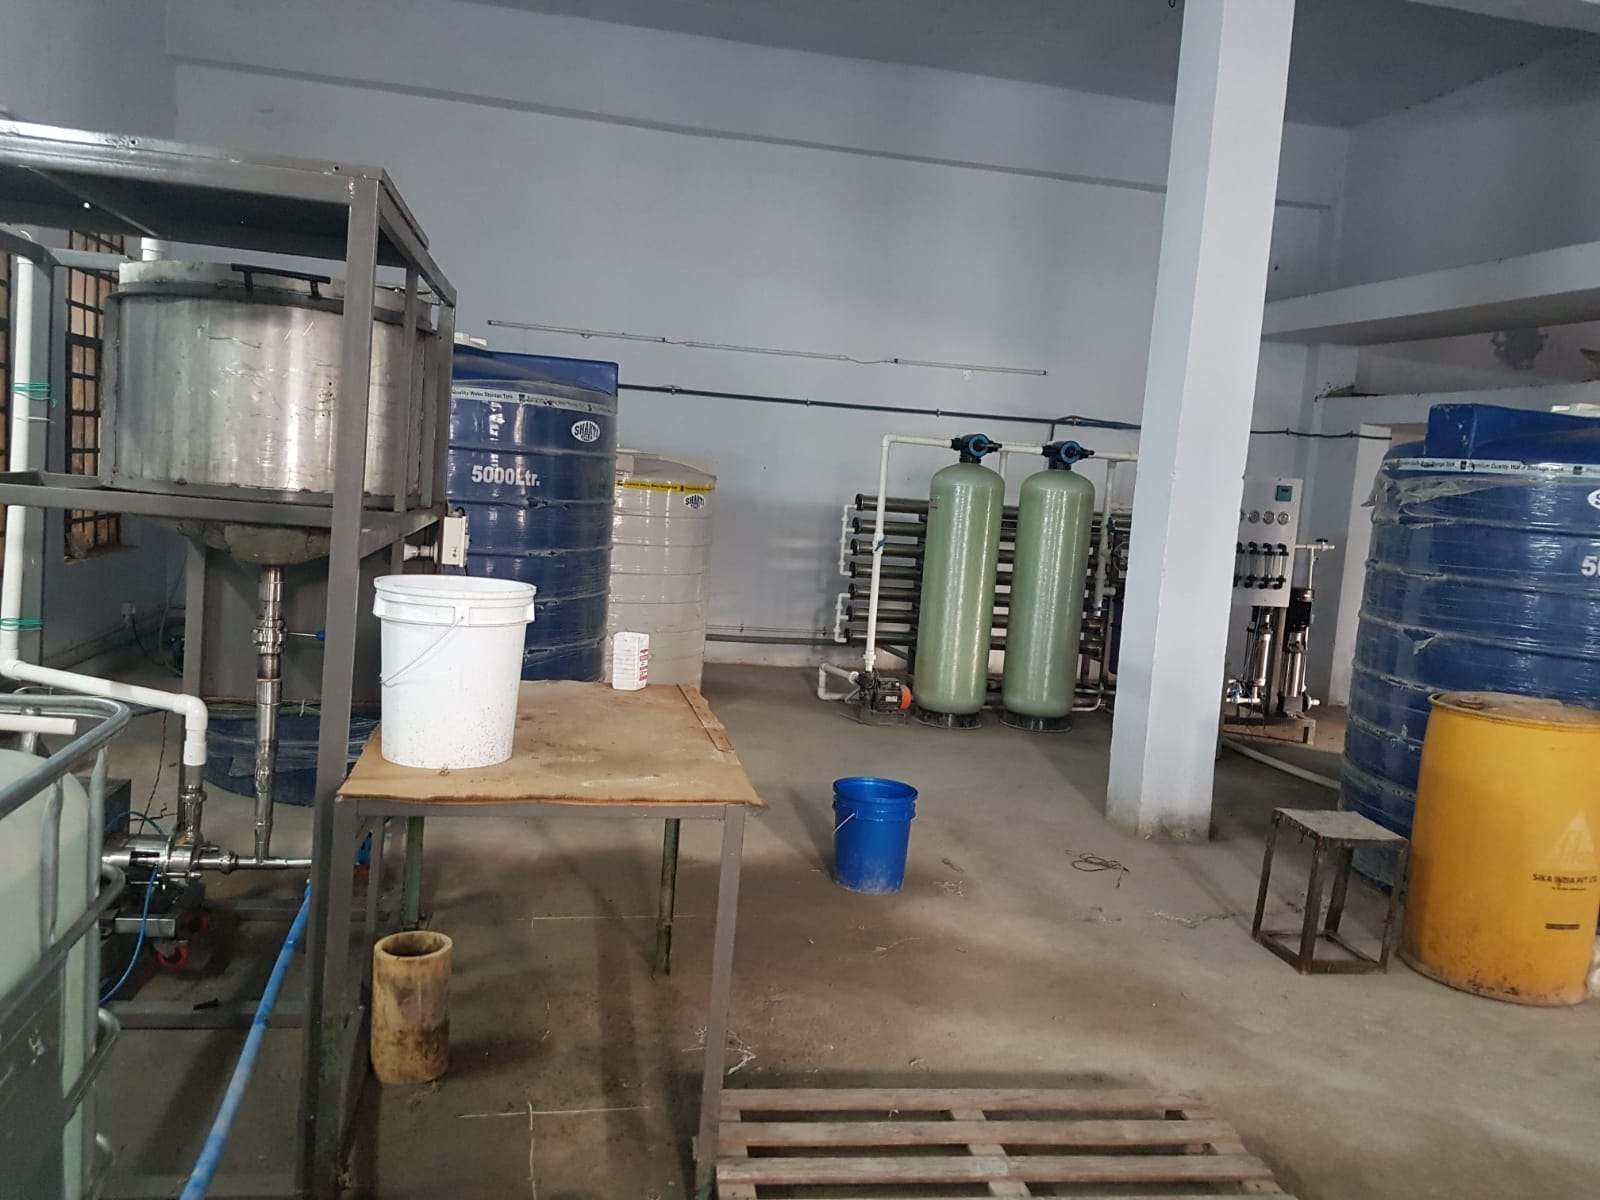 Diesel Exhaust Fluid Manufacturing Business for Sale in Chandigarh Panchkula